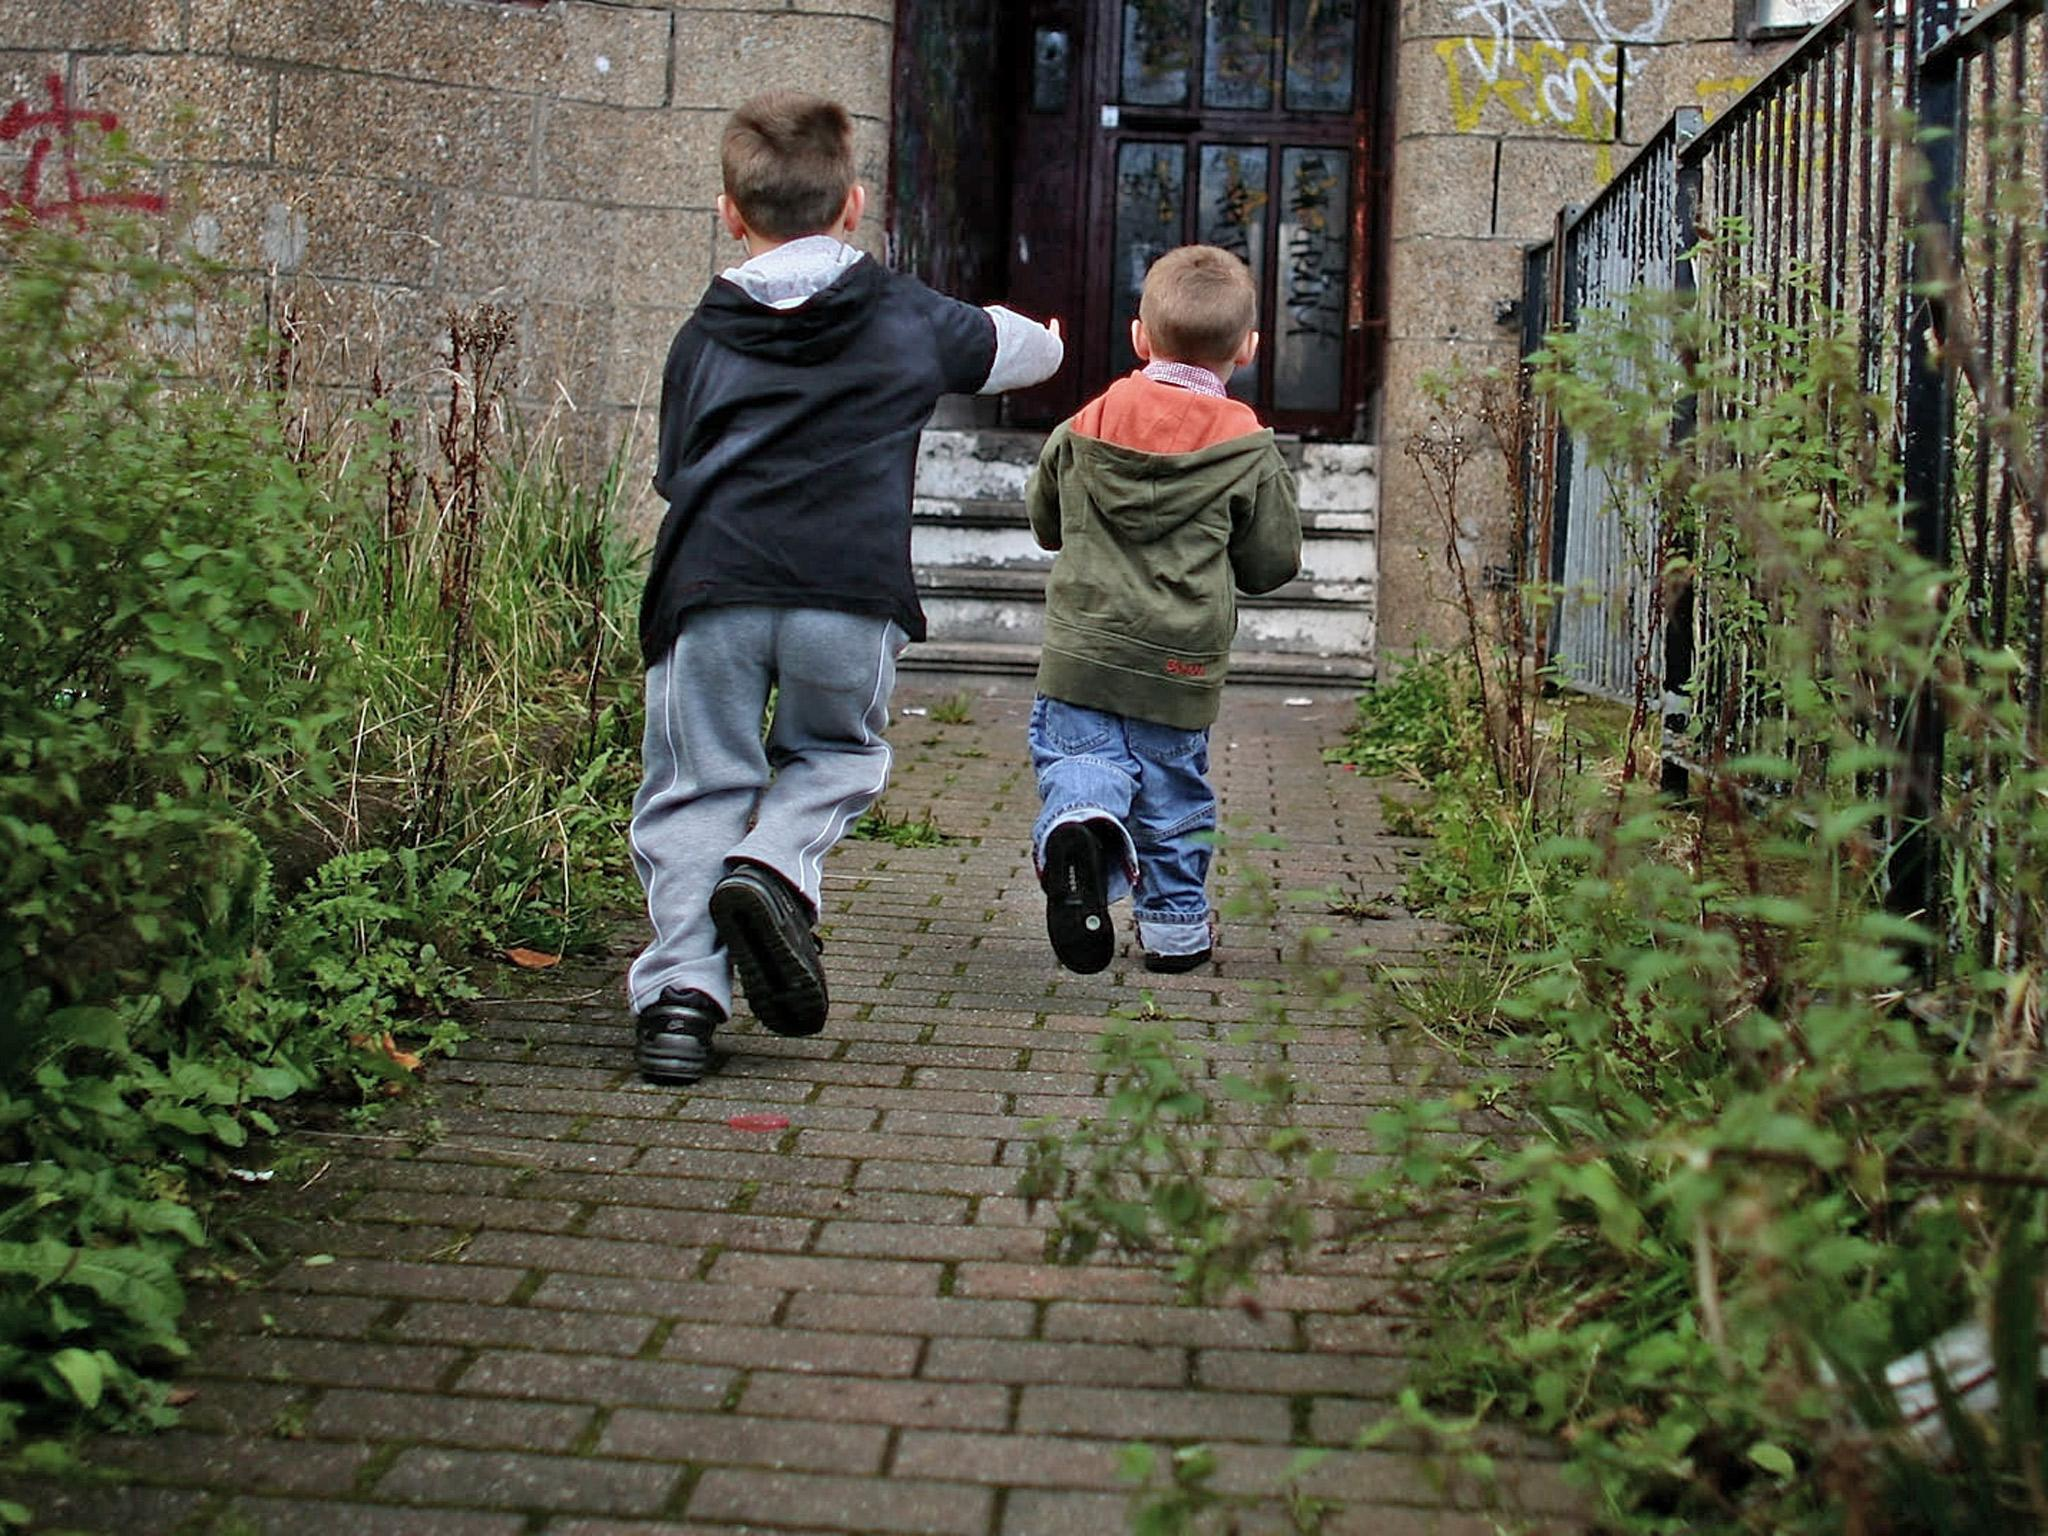 Shooting for children: benefit and harm